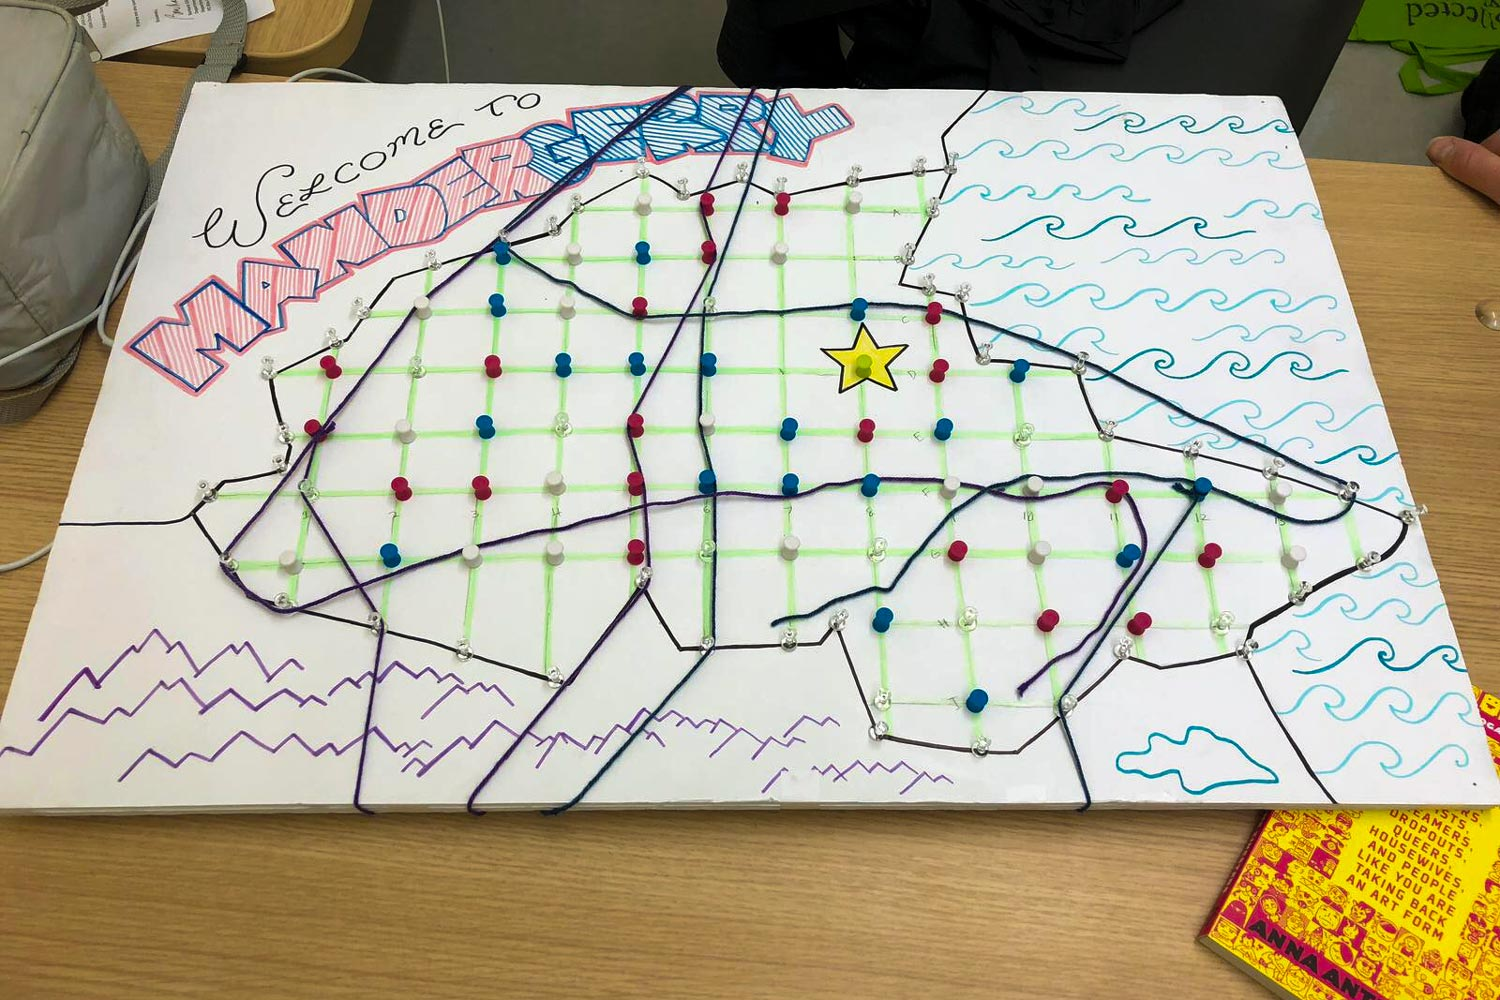 A prototype made by students Christian Baumgardner, Clara Doley, Eve Fidler, Quinn Lyerly and Jake Vanaman has players engage in gerrymandering.